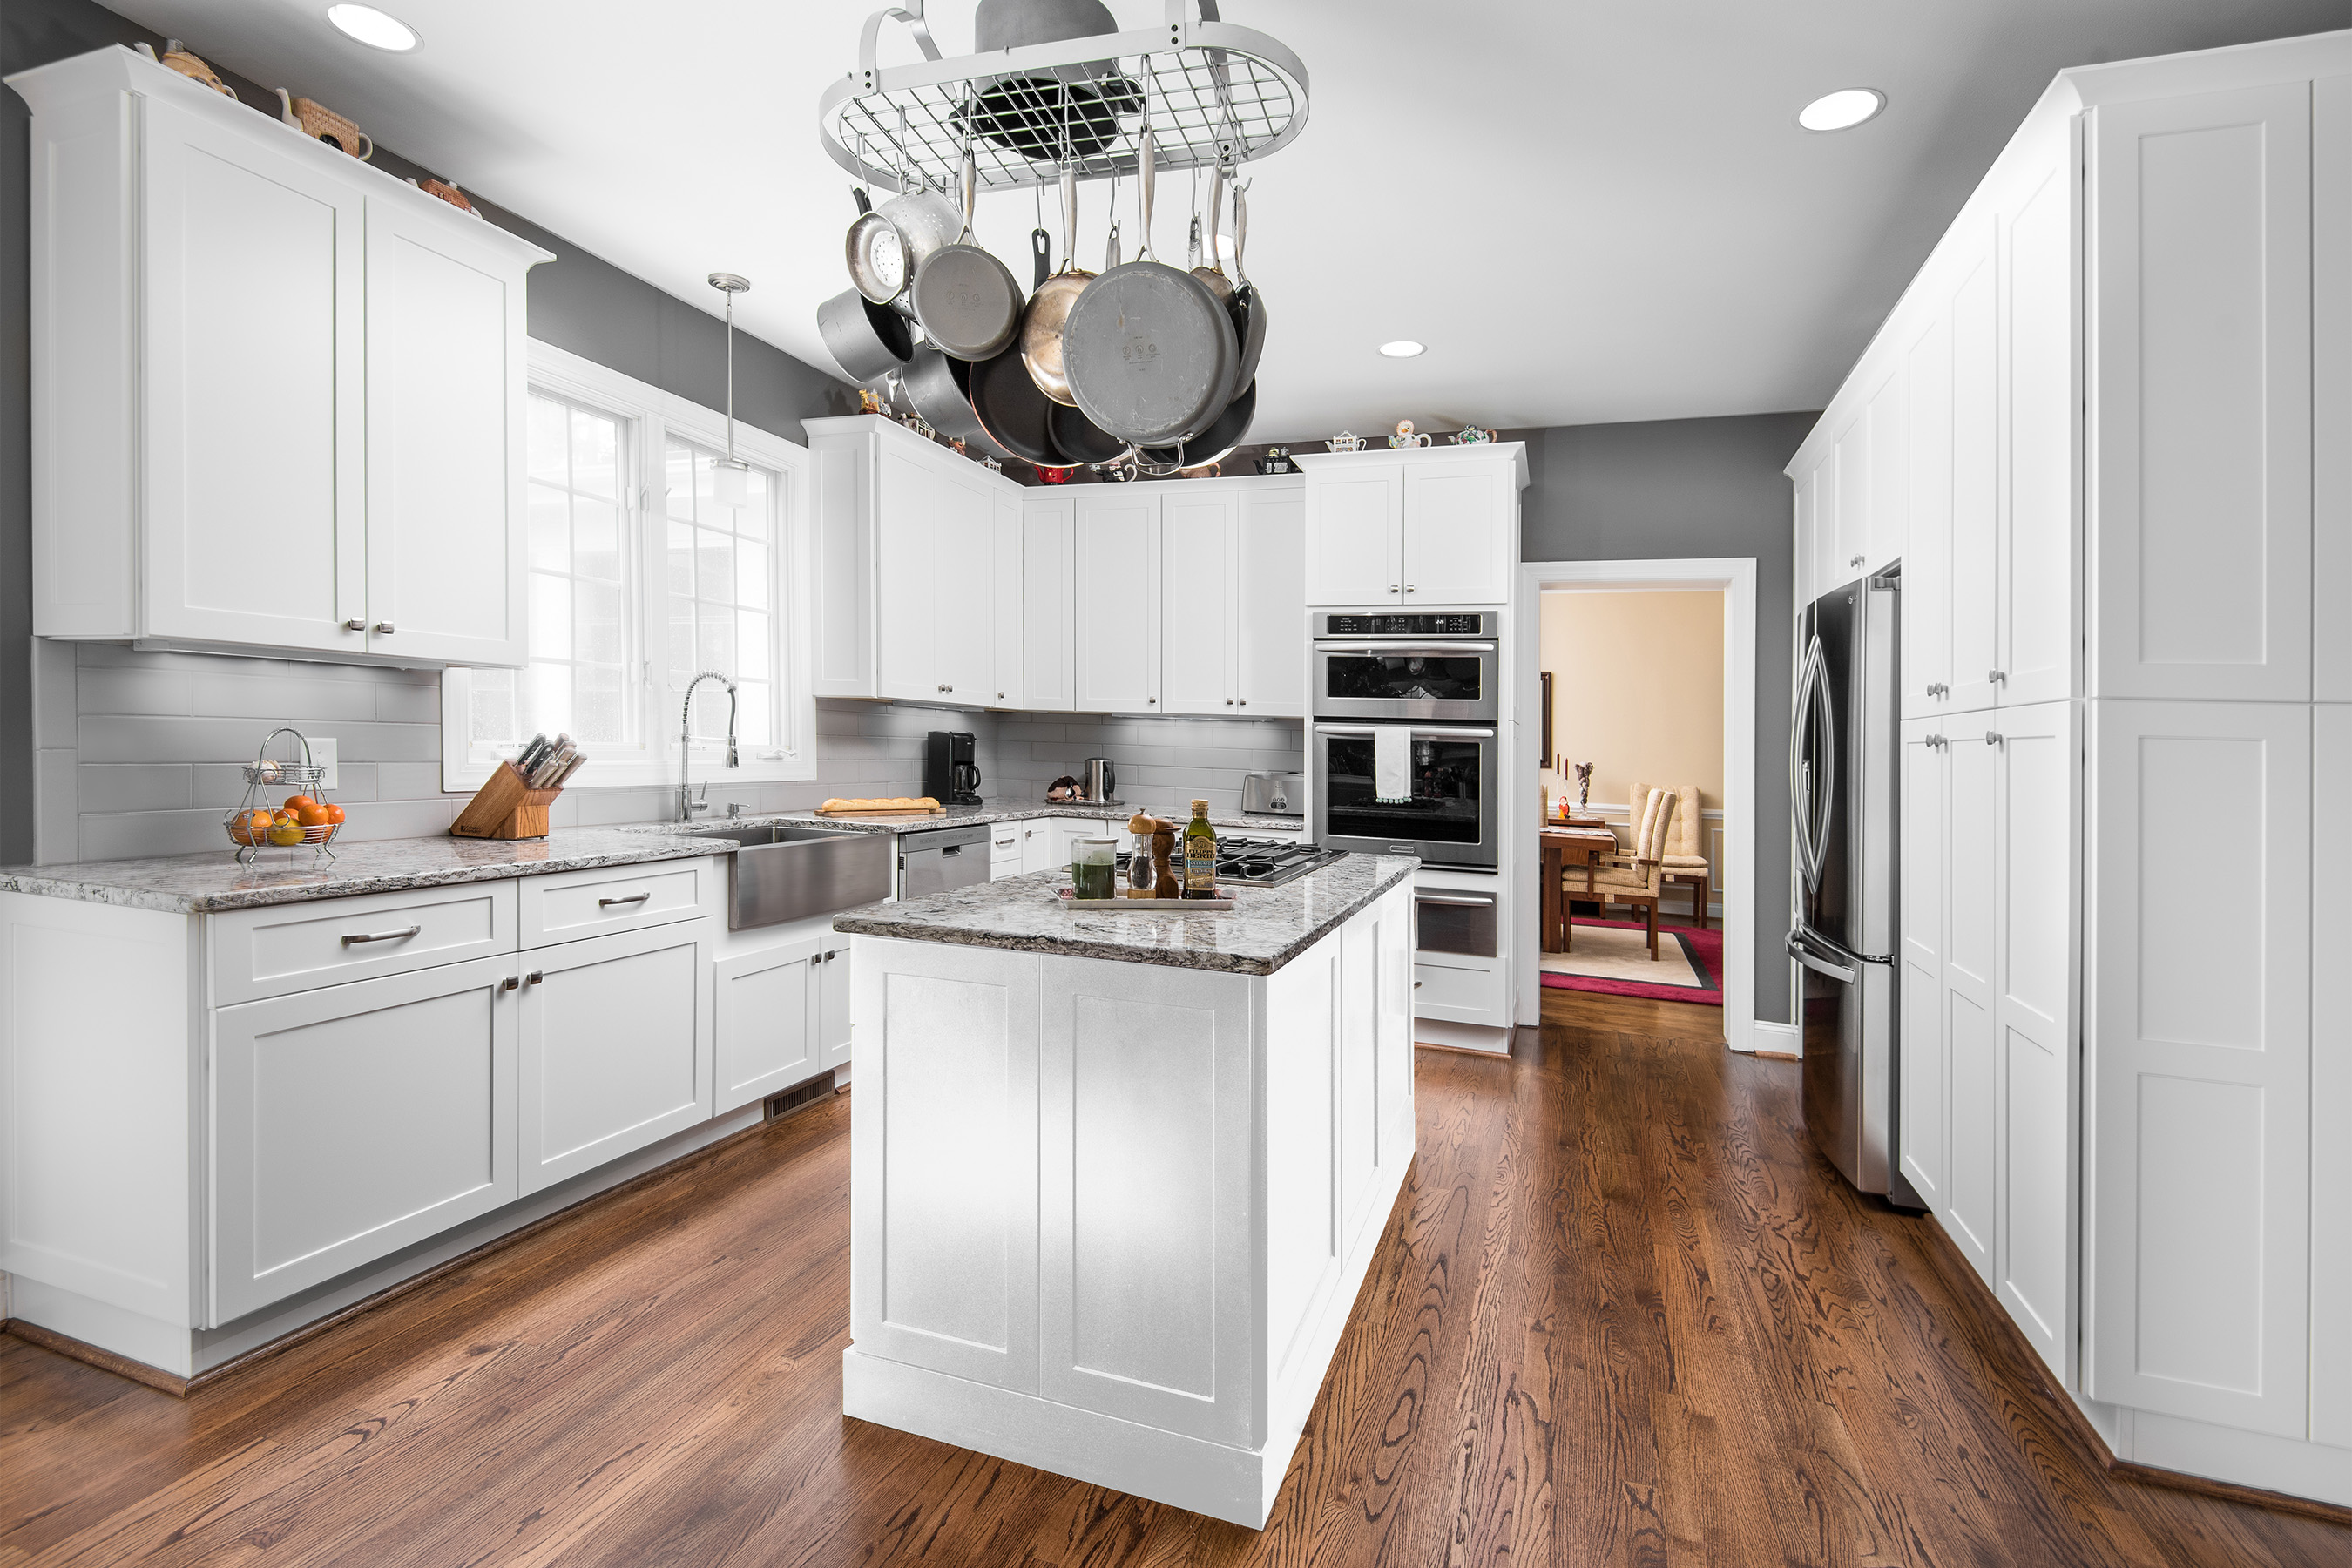 Kitchen Remodeling - Floor Expo & Design